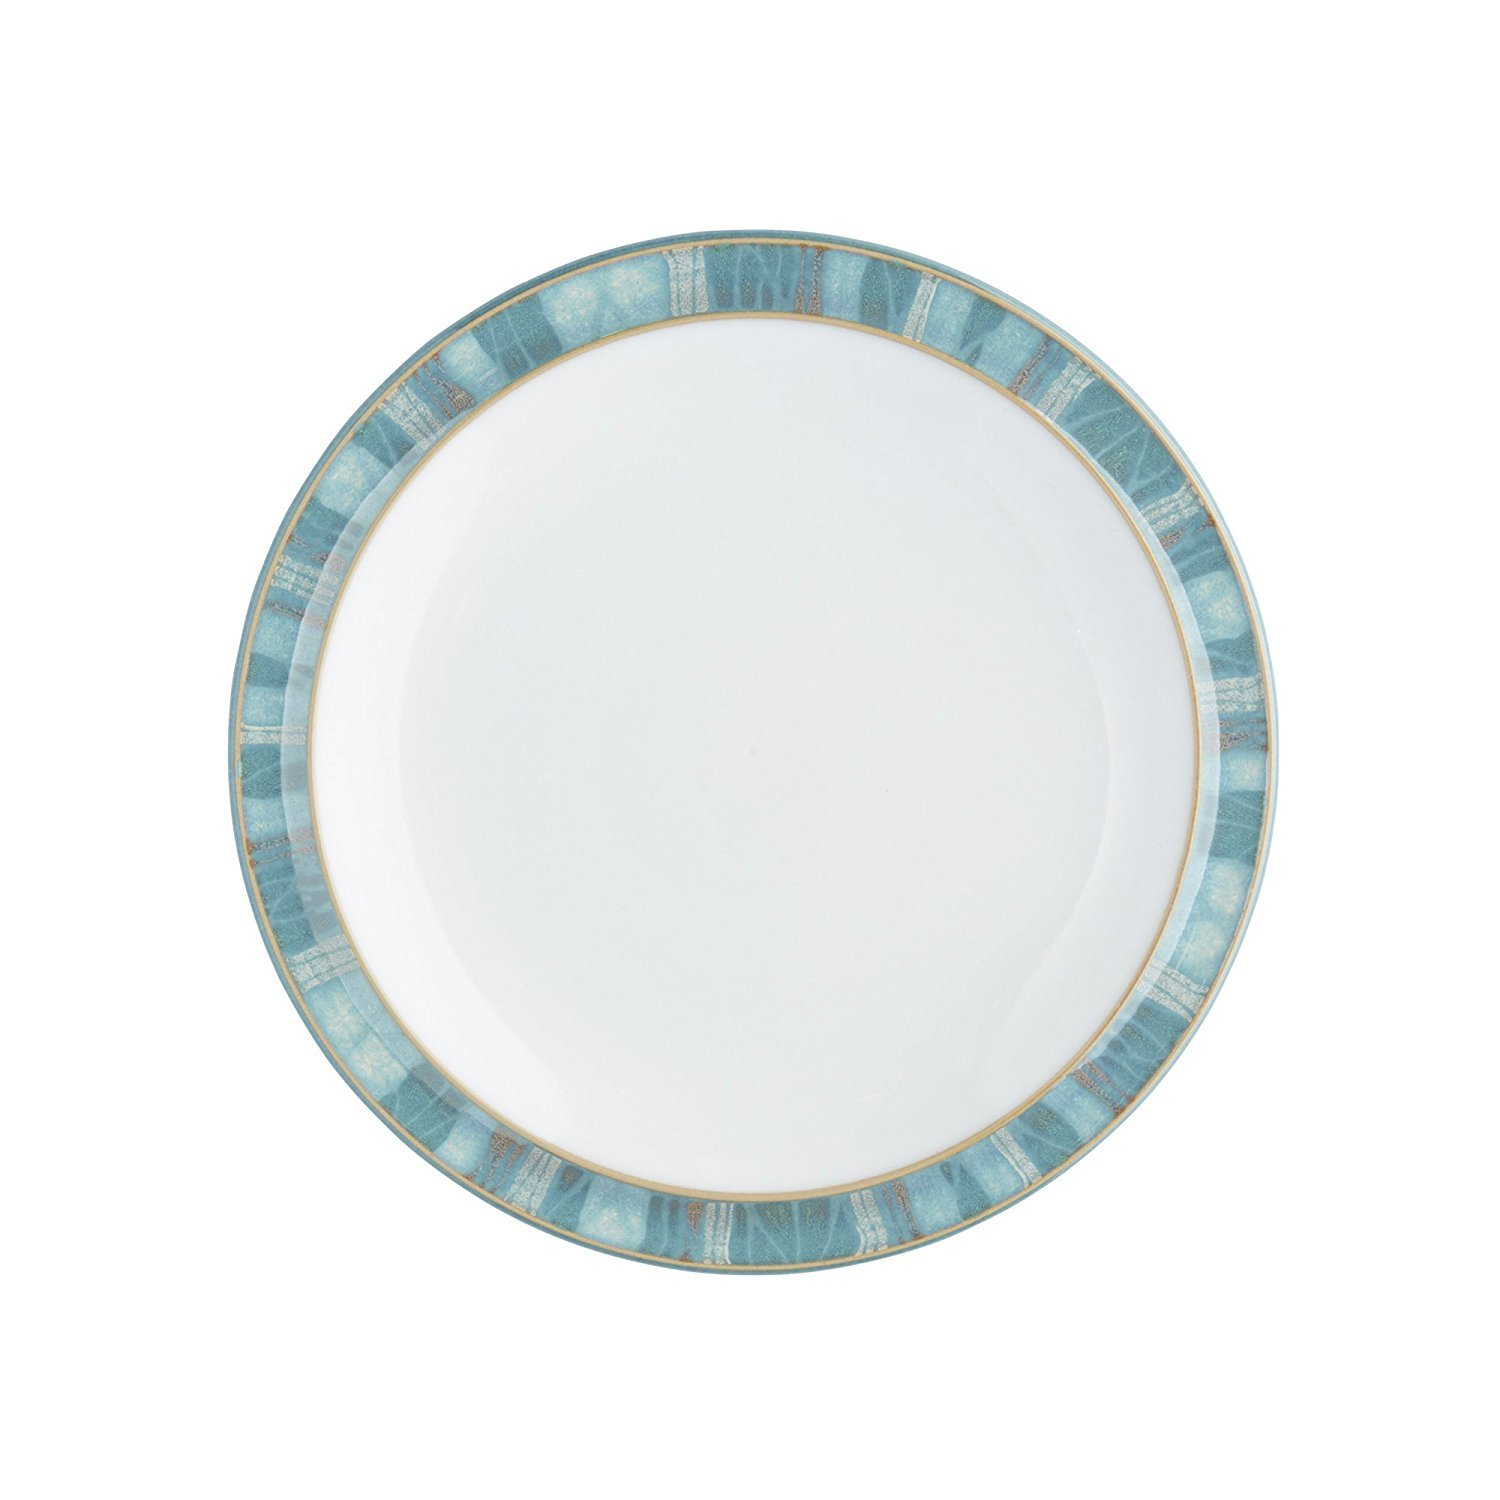 Denby Azure Coast Teaplate, Set of 4 AZC-008